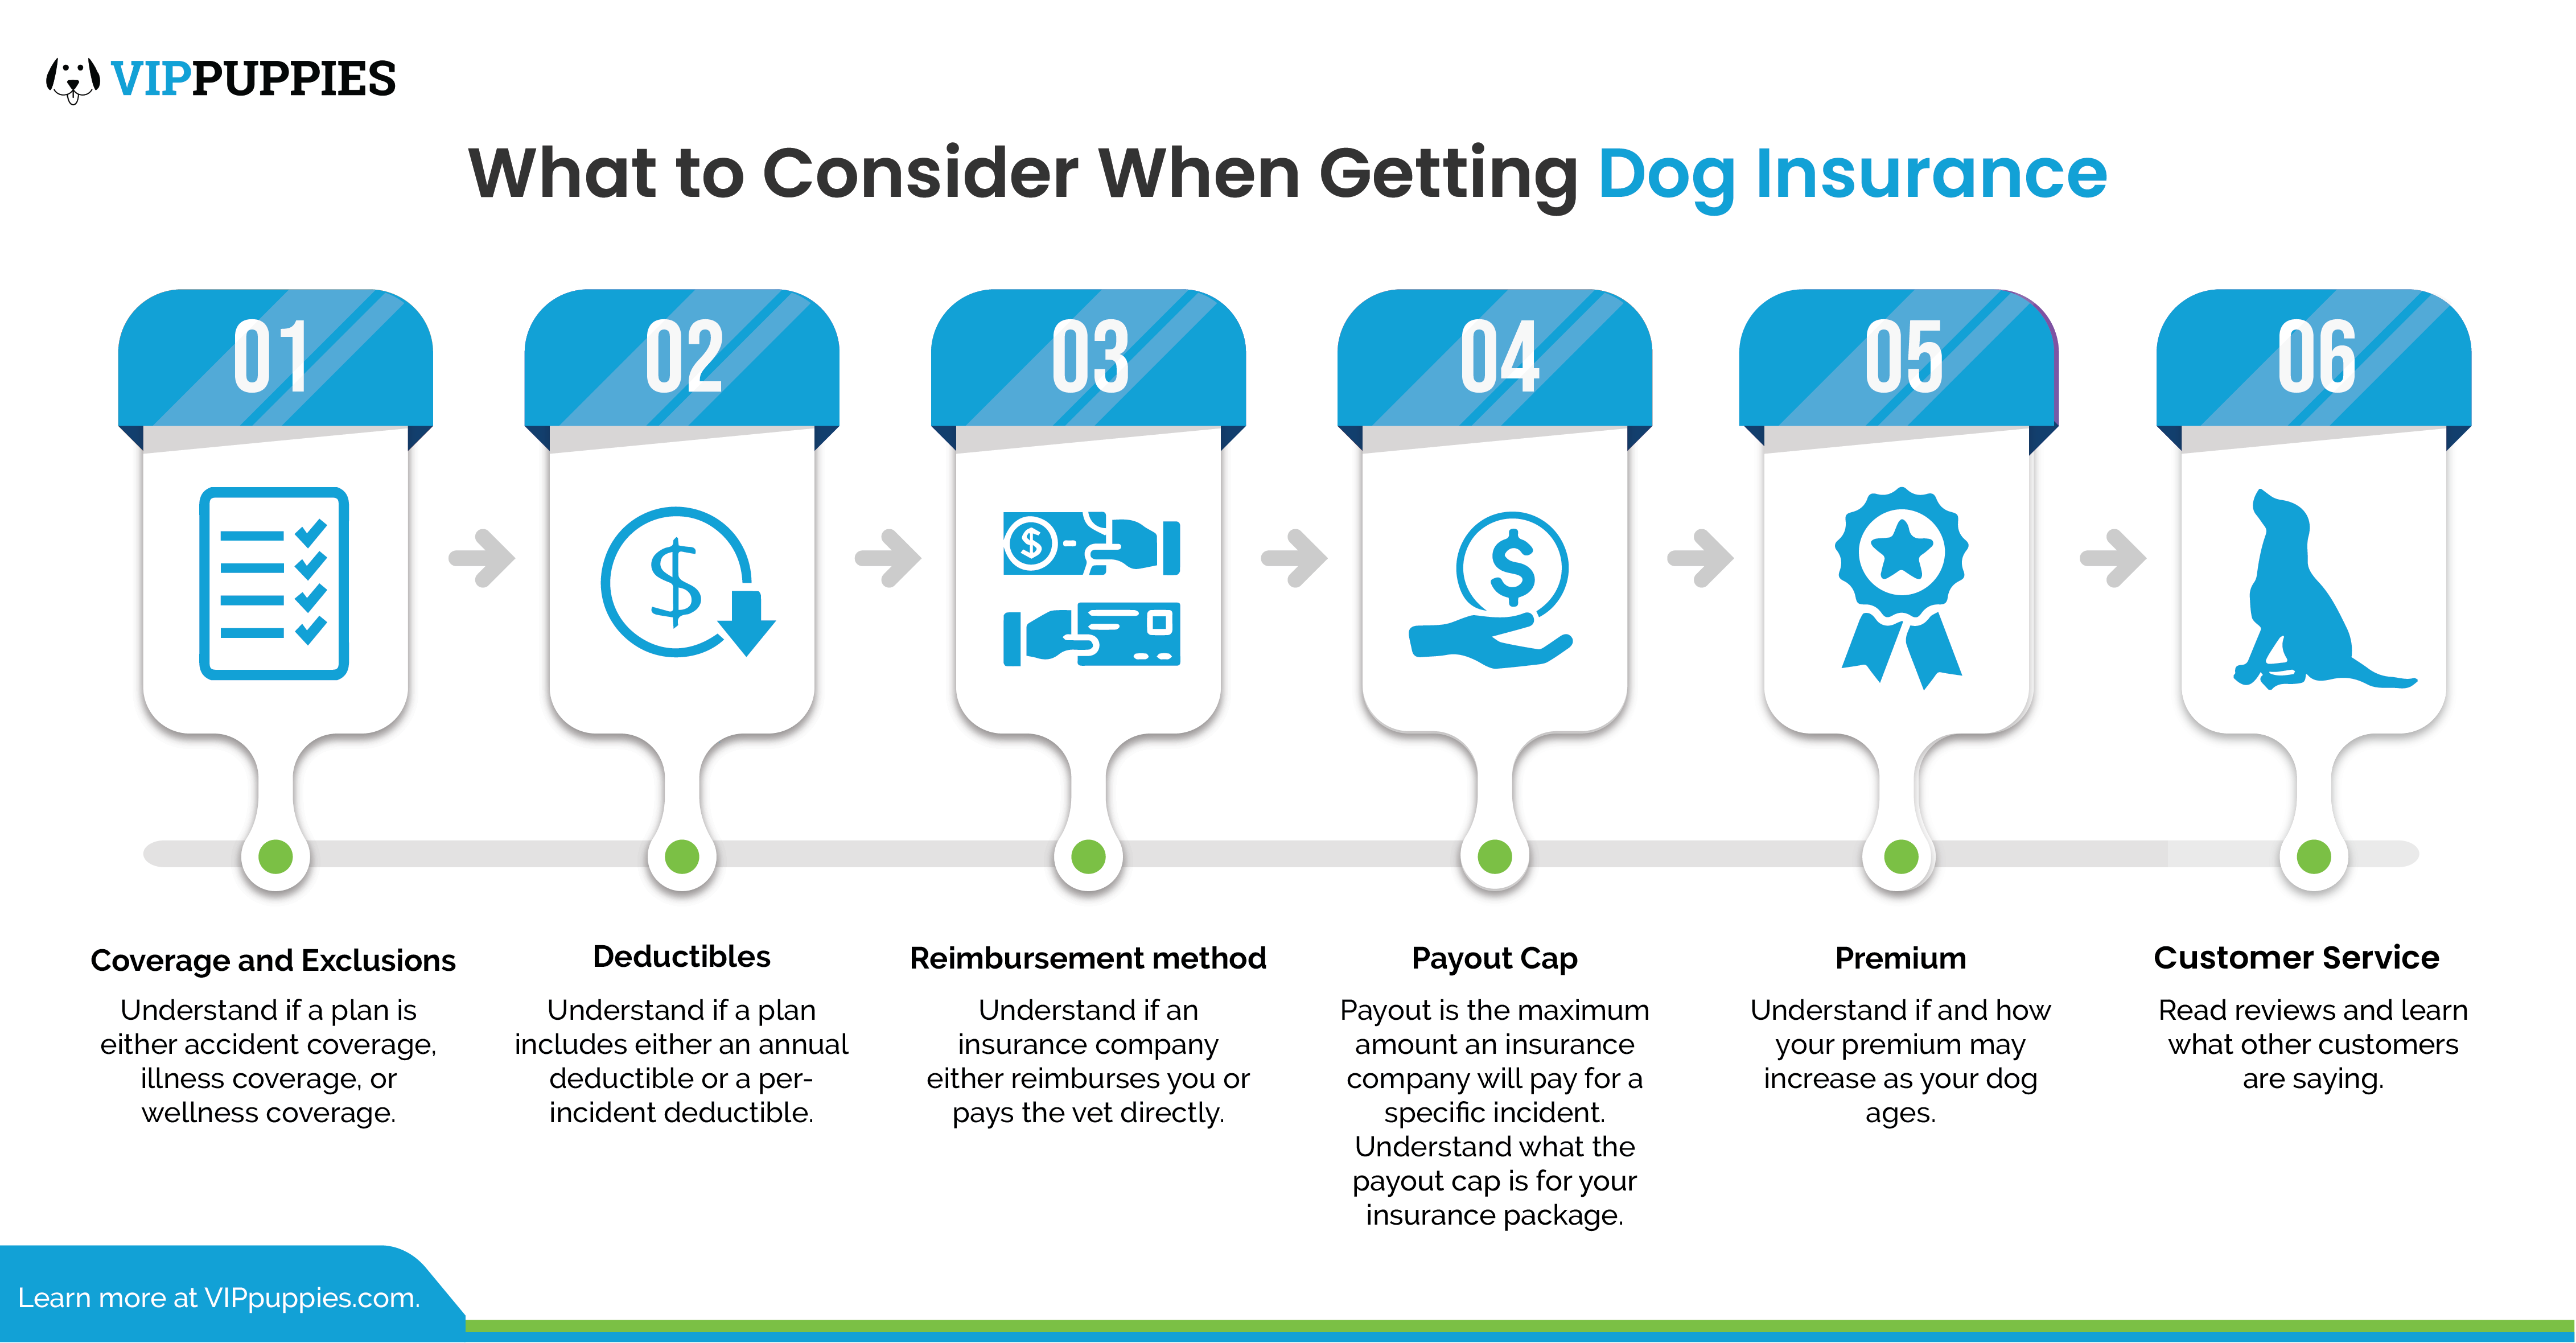 What to consider when getting dog insurance.